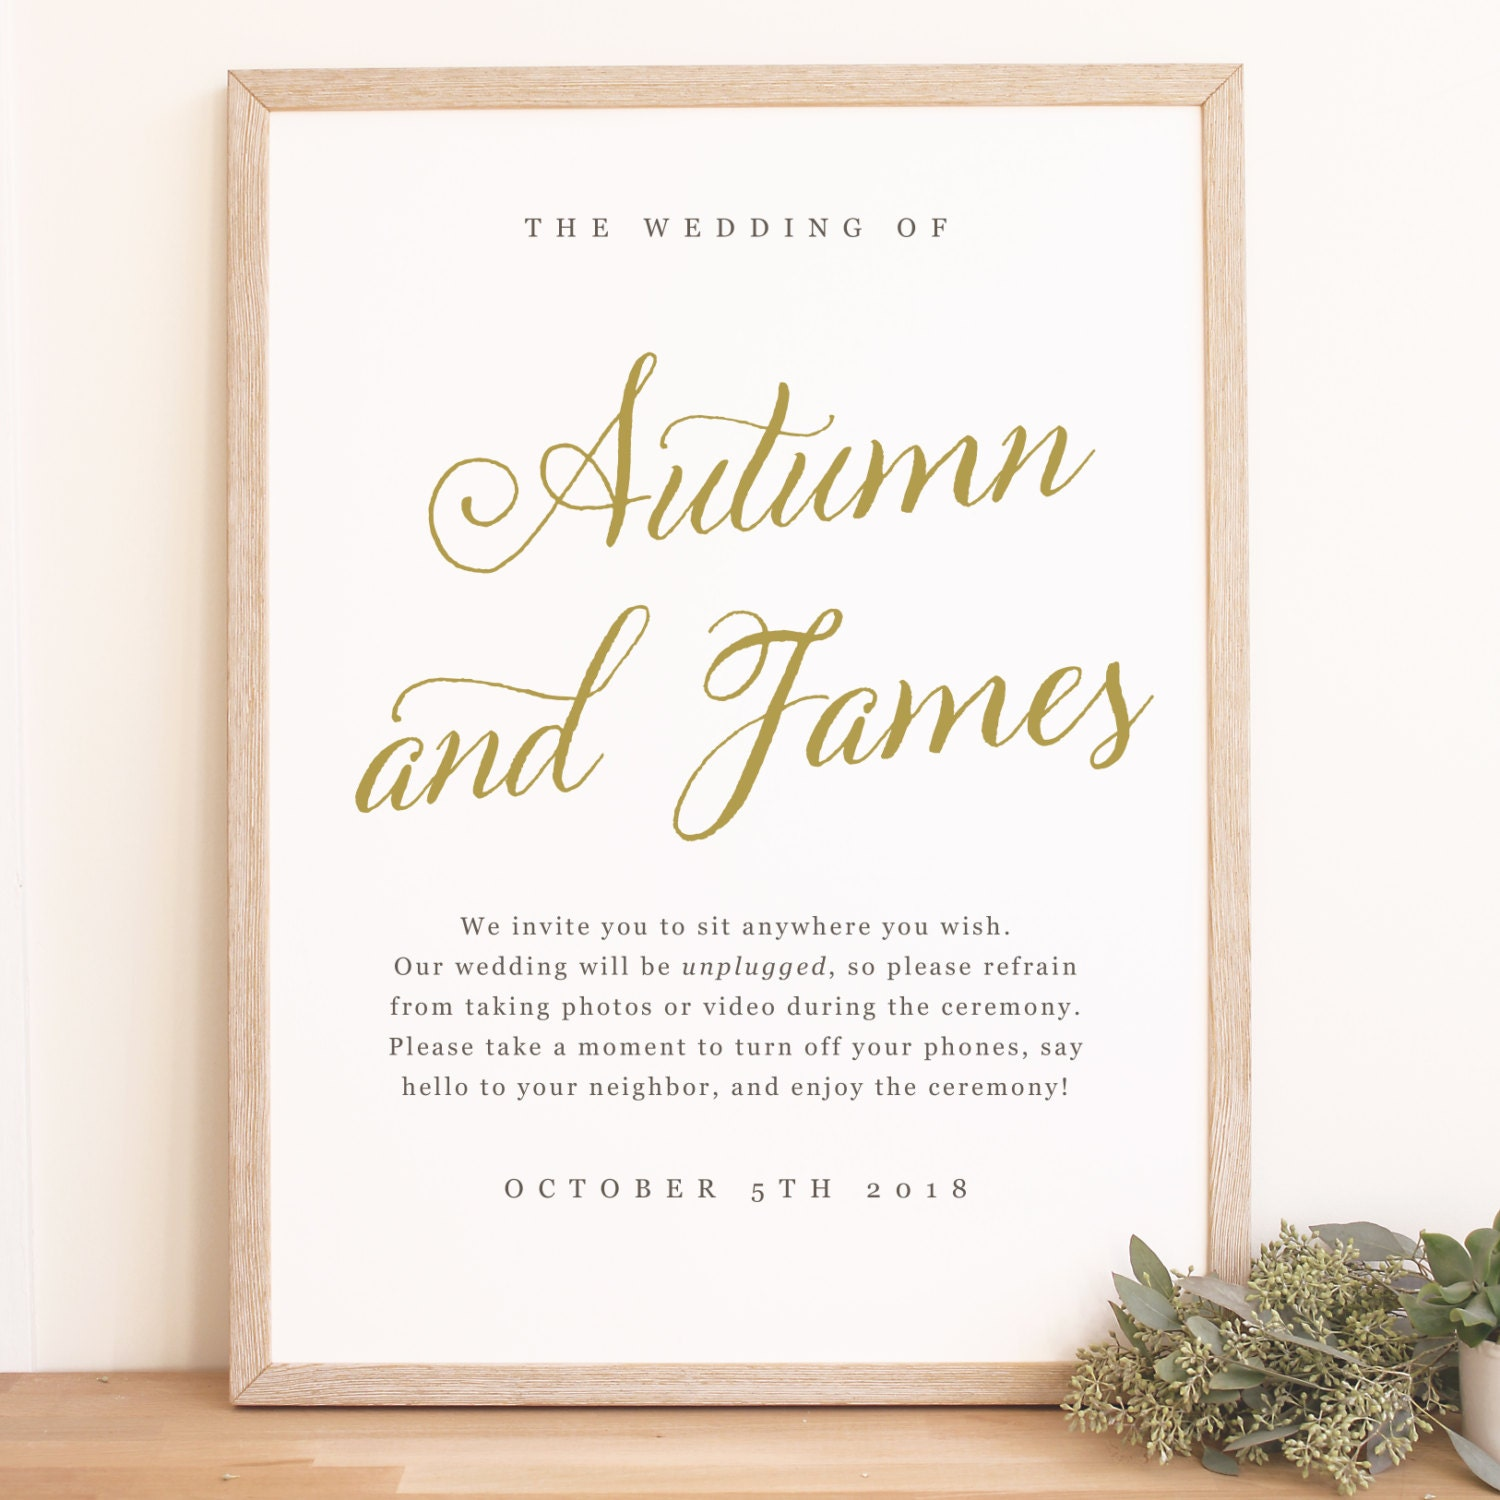 instant download wedding welcome sign template romantic script word or pages mac and pc. Black Bedroom Furniture Sets. Home Design Ideas